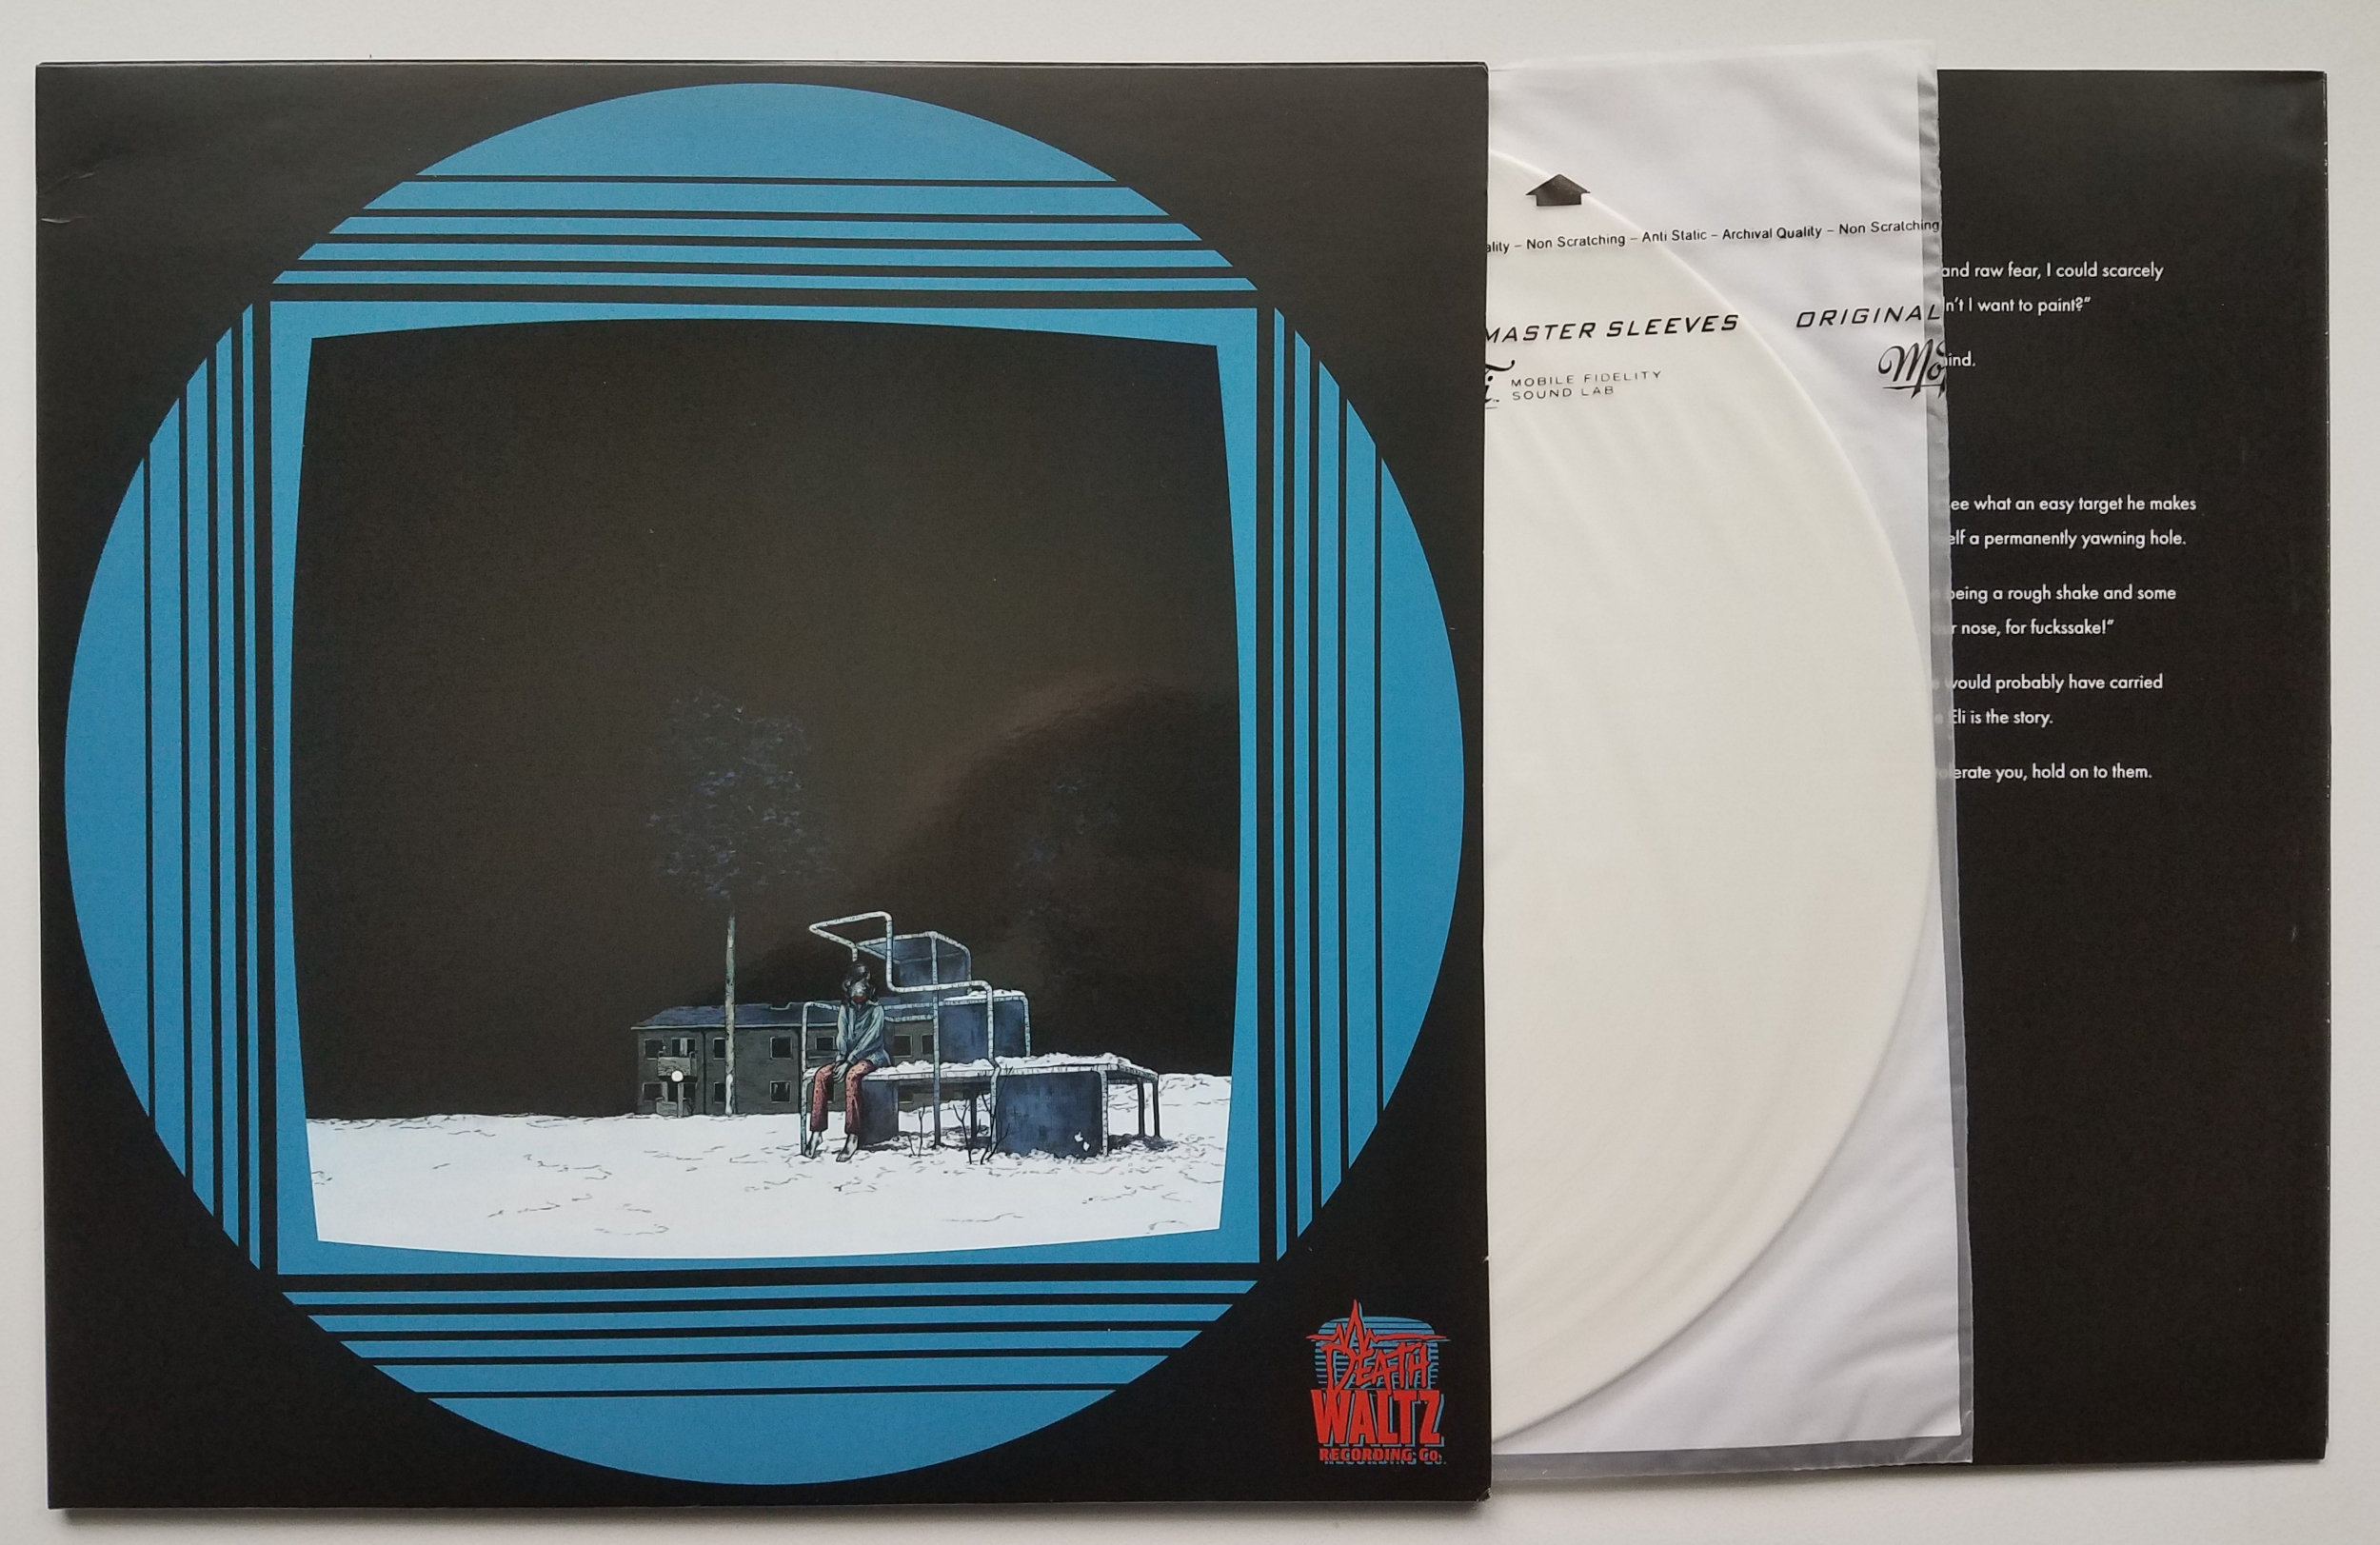 Let The Right One In Original Soundtrack by Christopher Johan Soderqvist LP (White Vinyl)